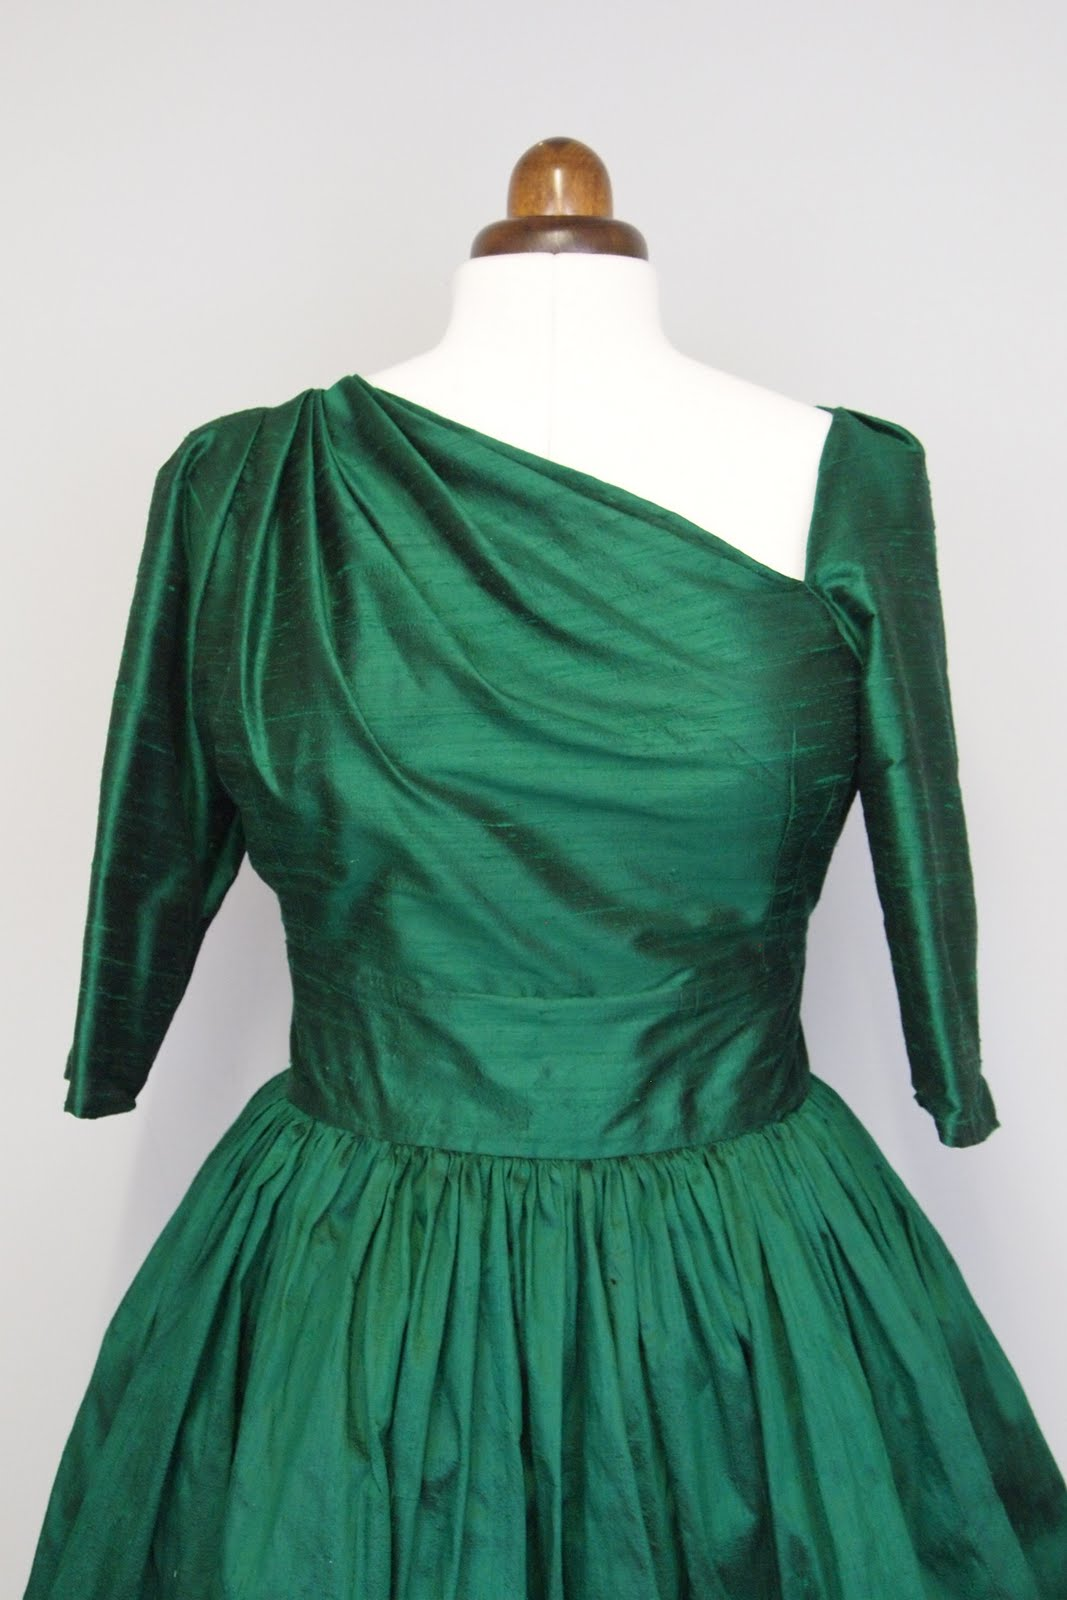 Alexandra King - Vintage Inspired Clothing. : Emerald Green Cocktail ...